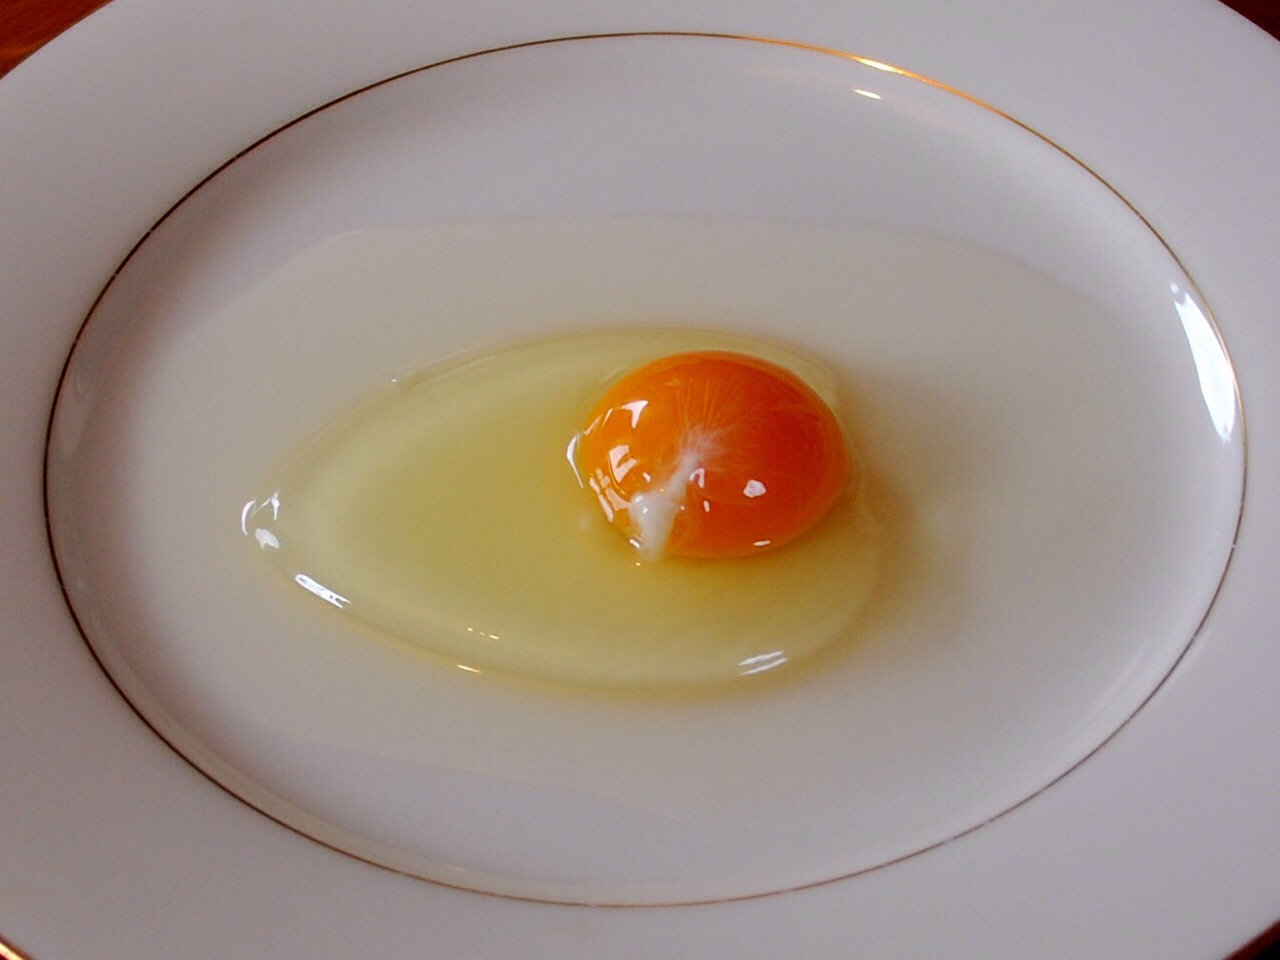 Raw egg helps the skin on your face. Separate the egg white and yolk. Whisk the egg white then rub all over your face and wait for it to dry. Rinse with cold water.